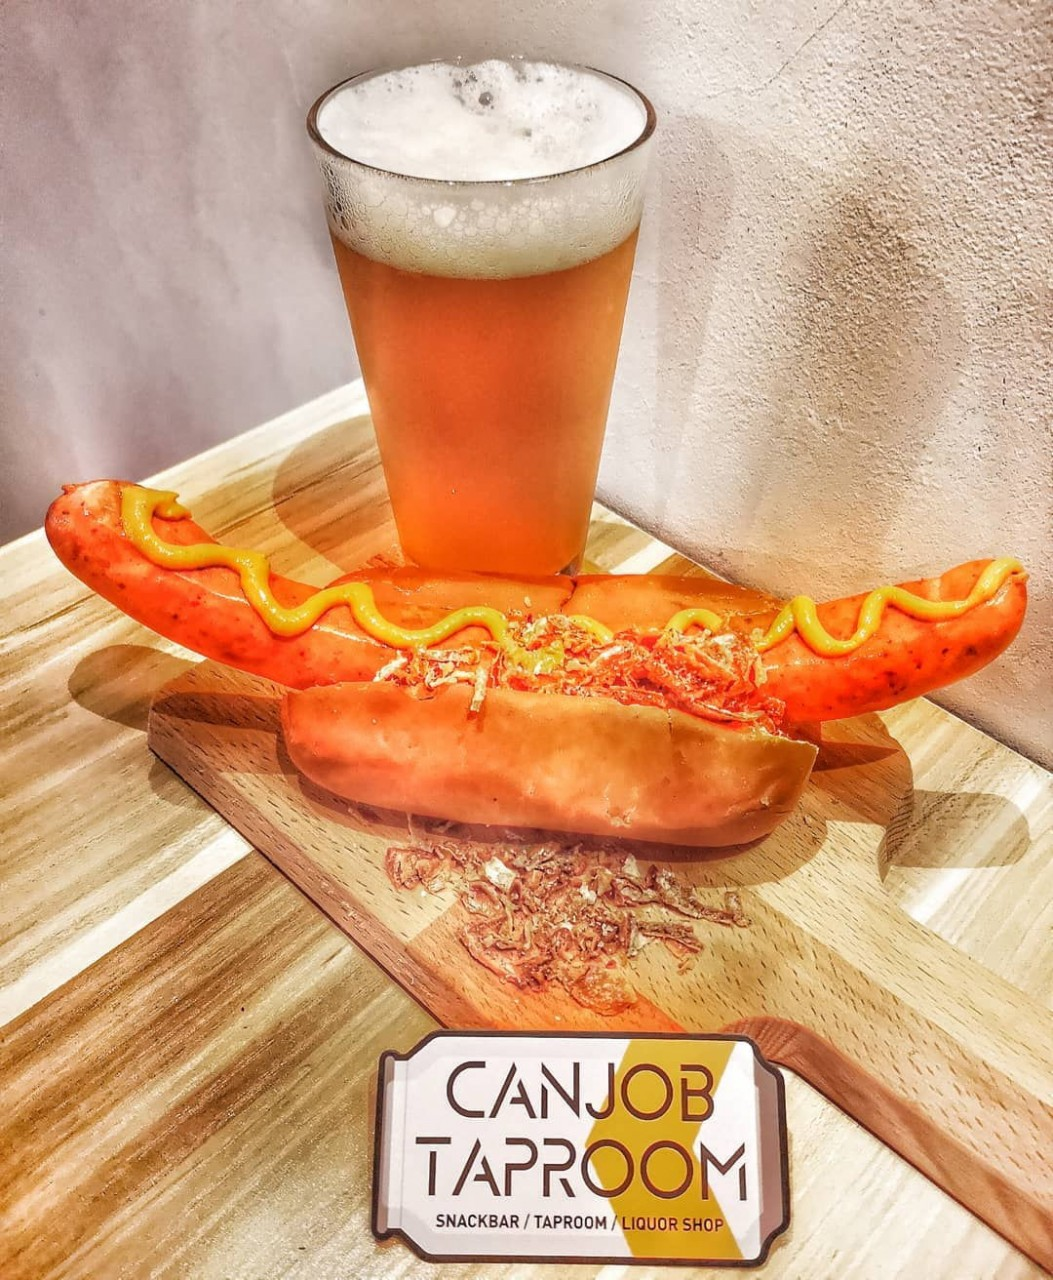 canjob taproom hotdogs